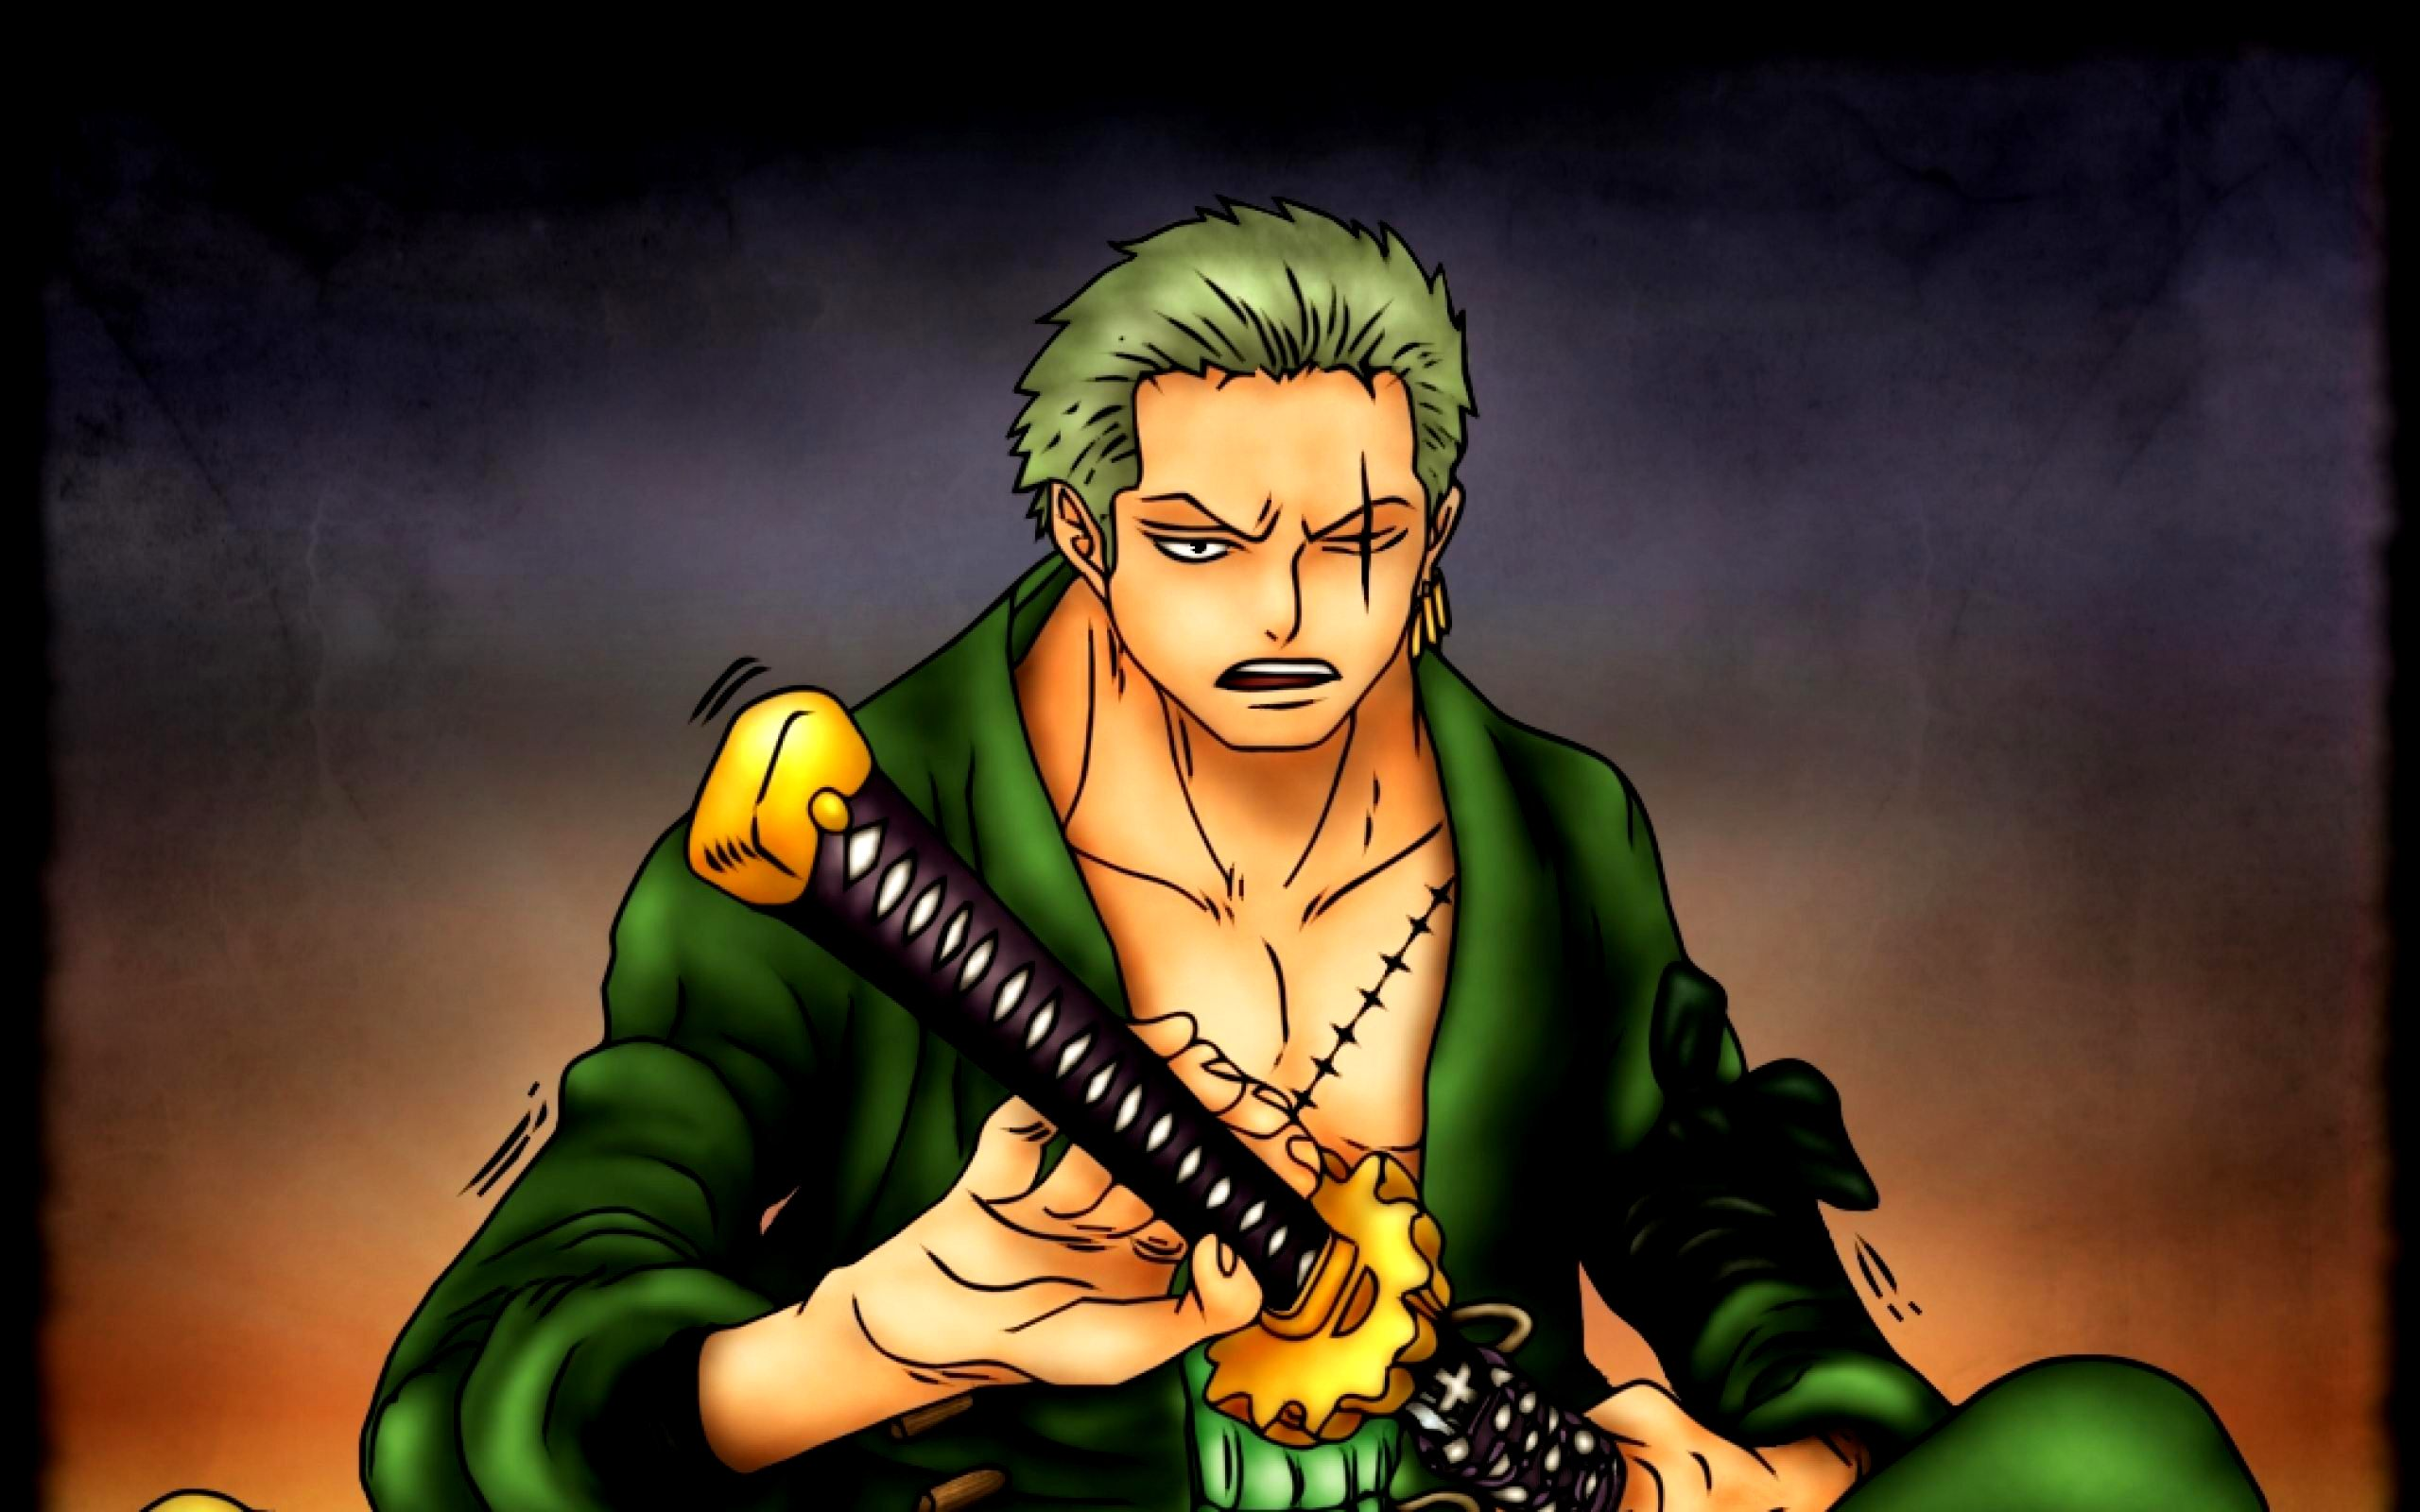 Awesome Roronoa Zoro One Piece Image HD Wallpaper Desktop